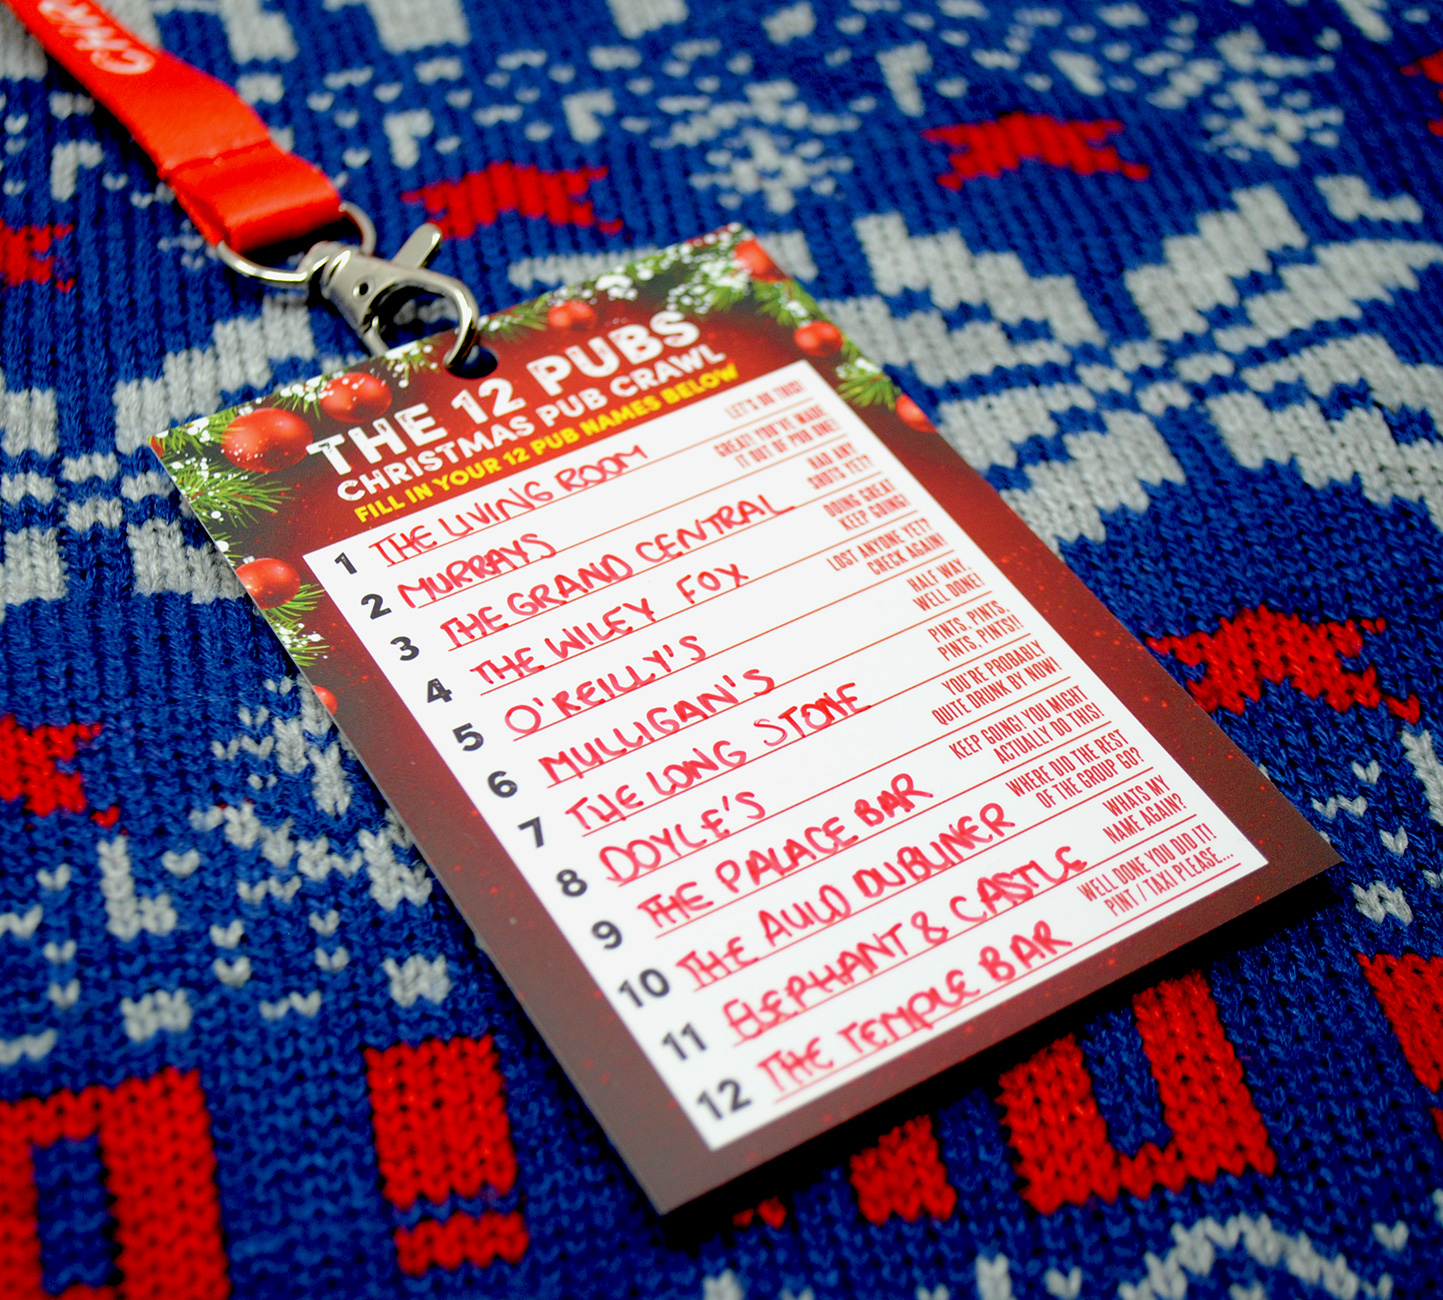 12 pubs of christmas dublin vip guide lanyard